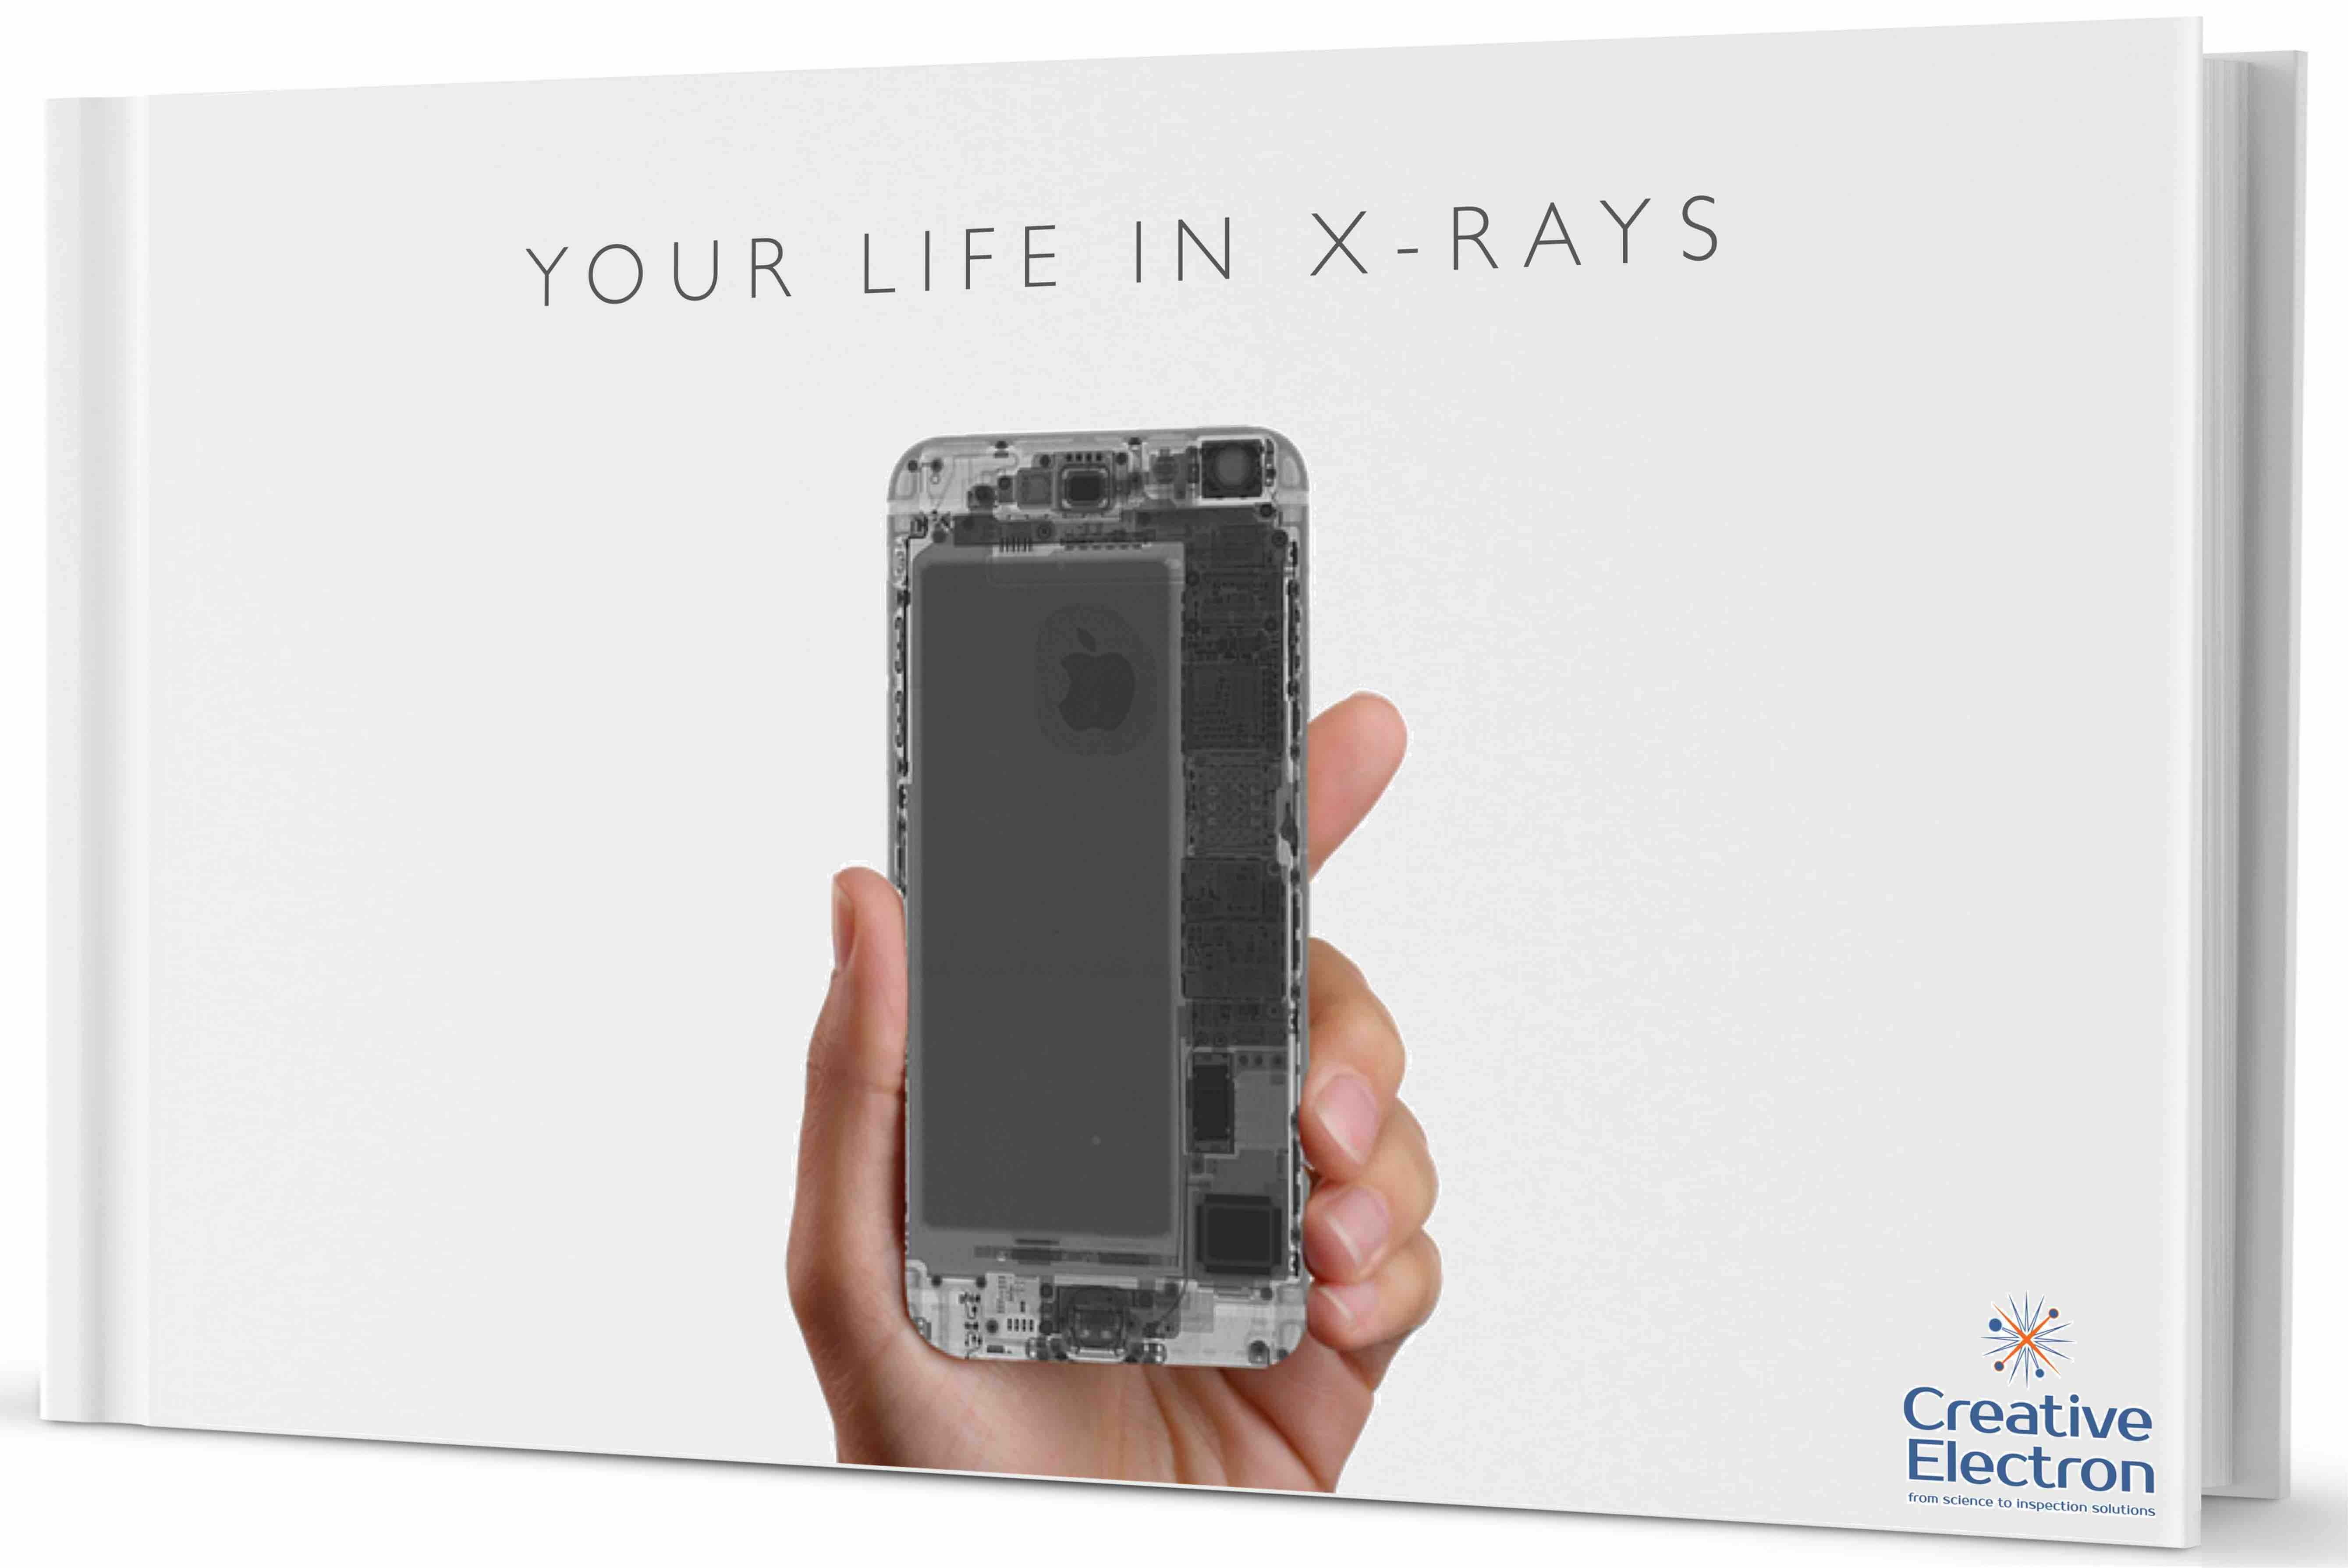 Geekin Gorgeous your life in x-rays - new book release | creative electron